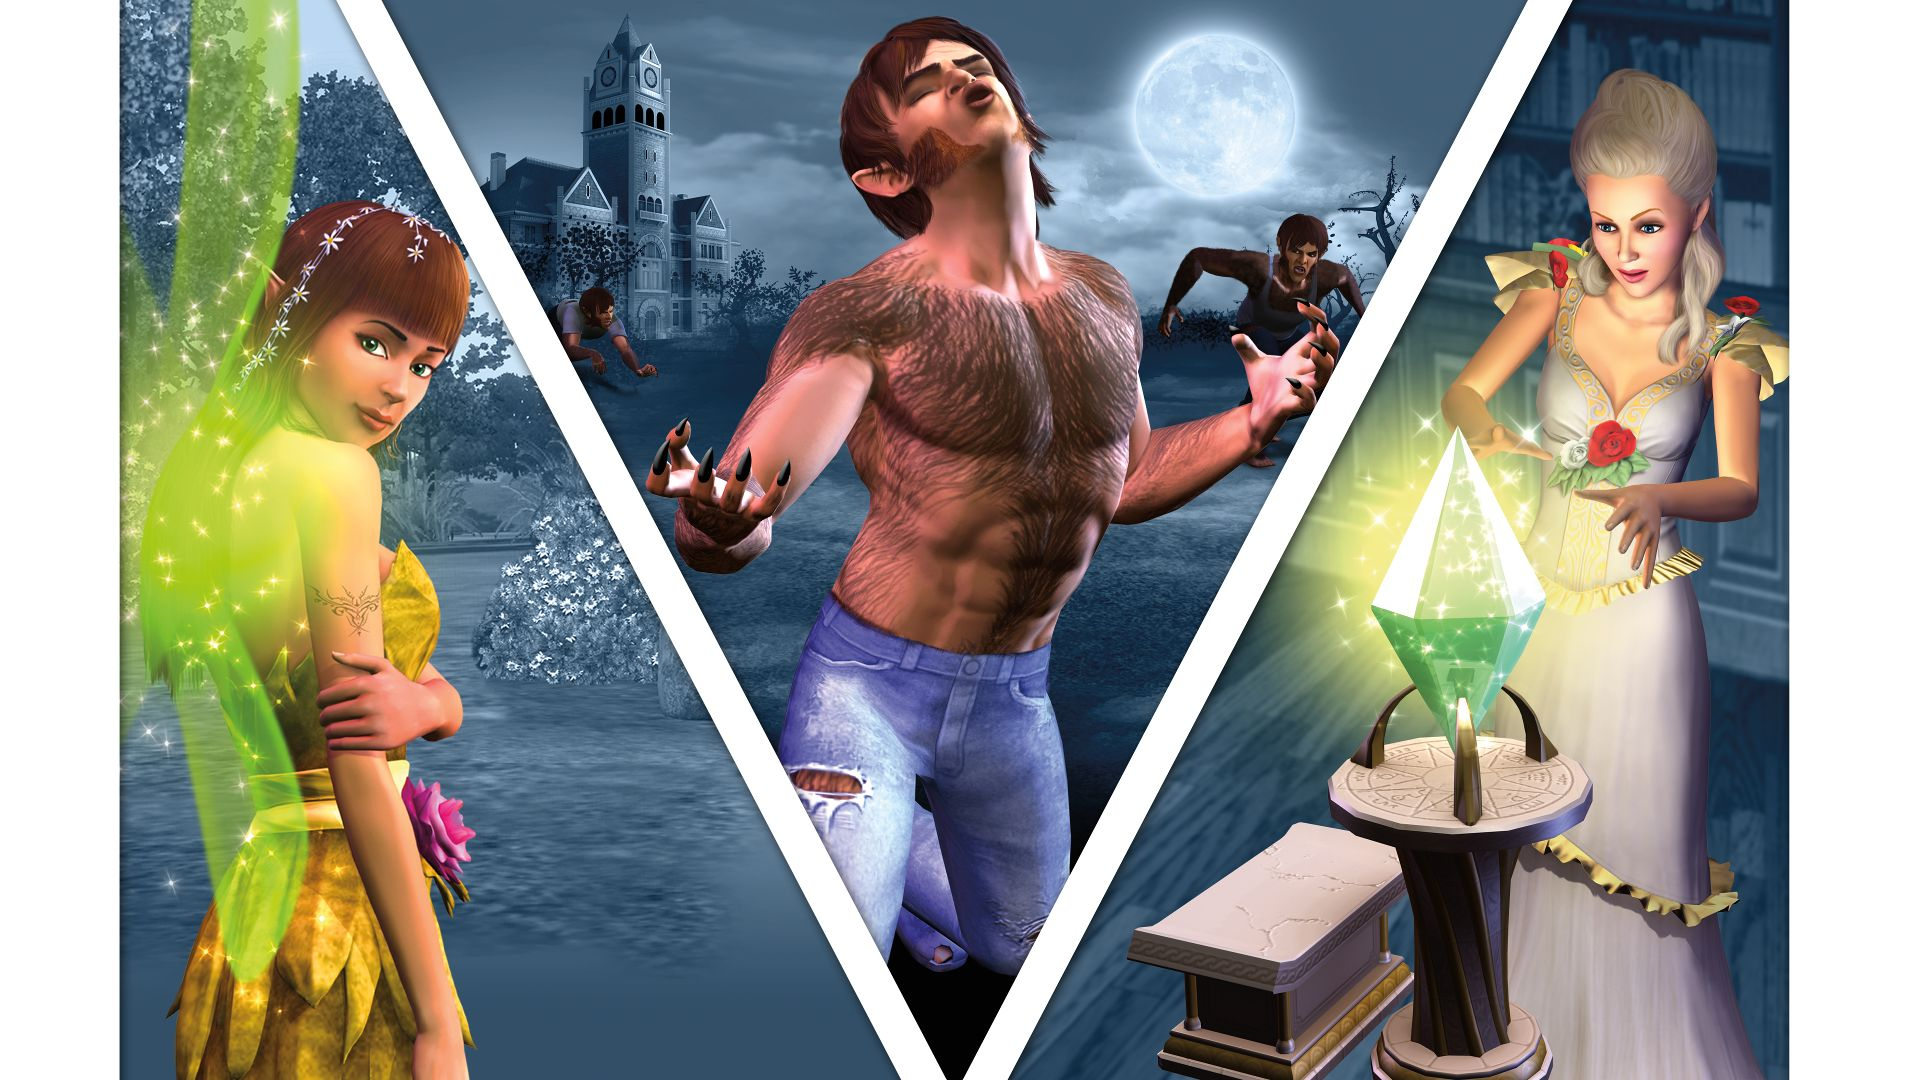 The sims 3 supernatural for pc mac origin for Sims 3 store torrent